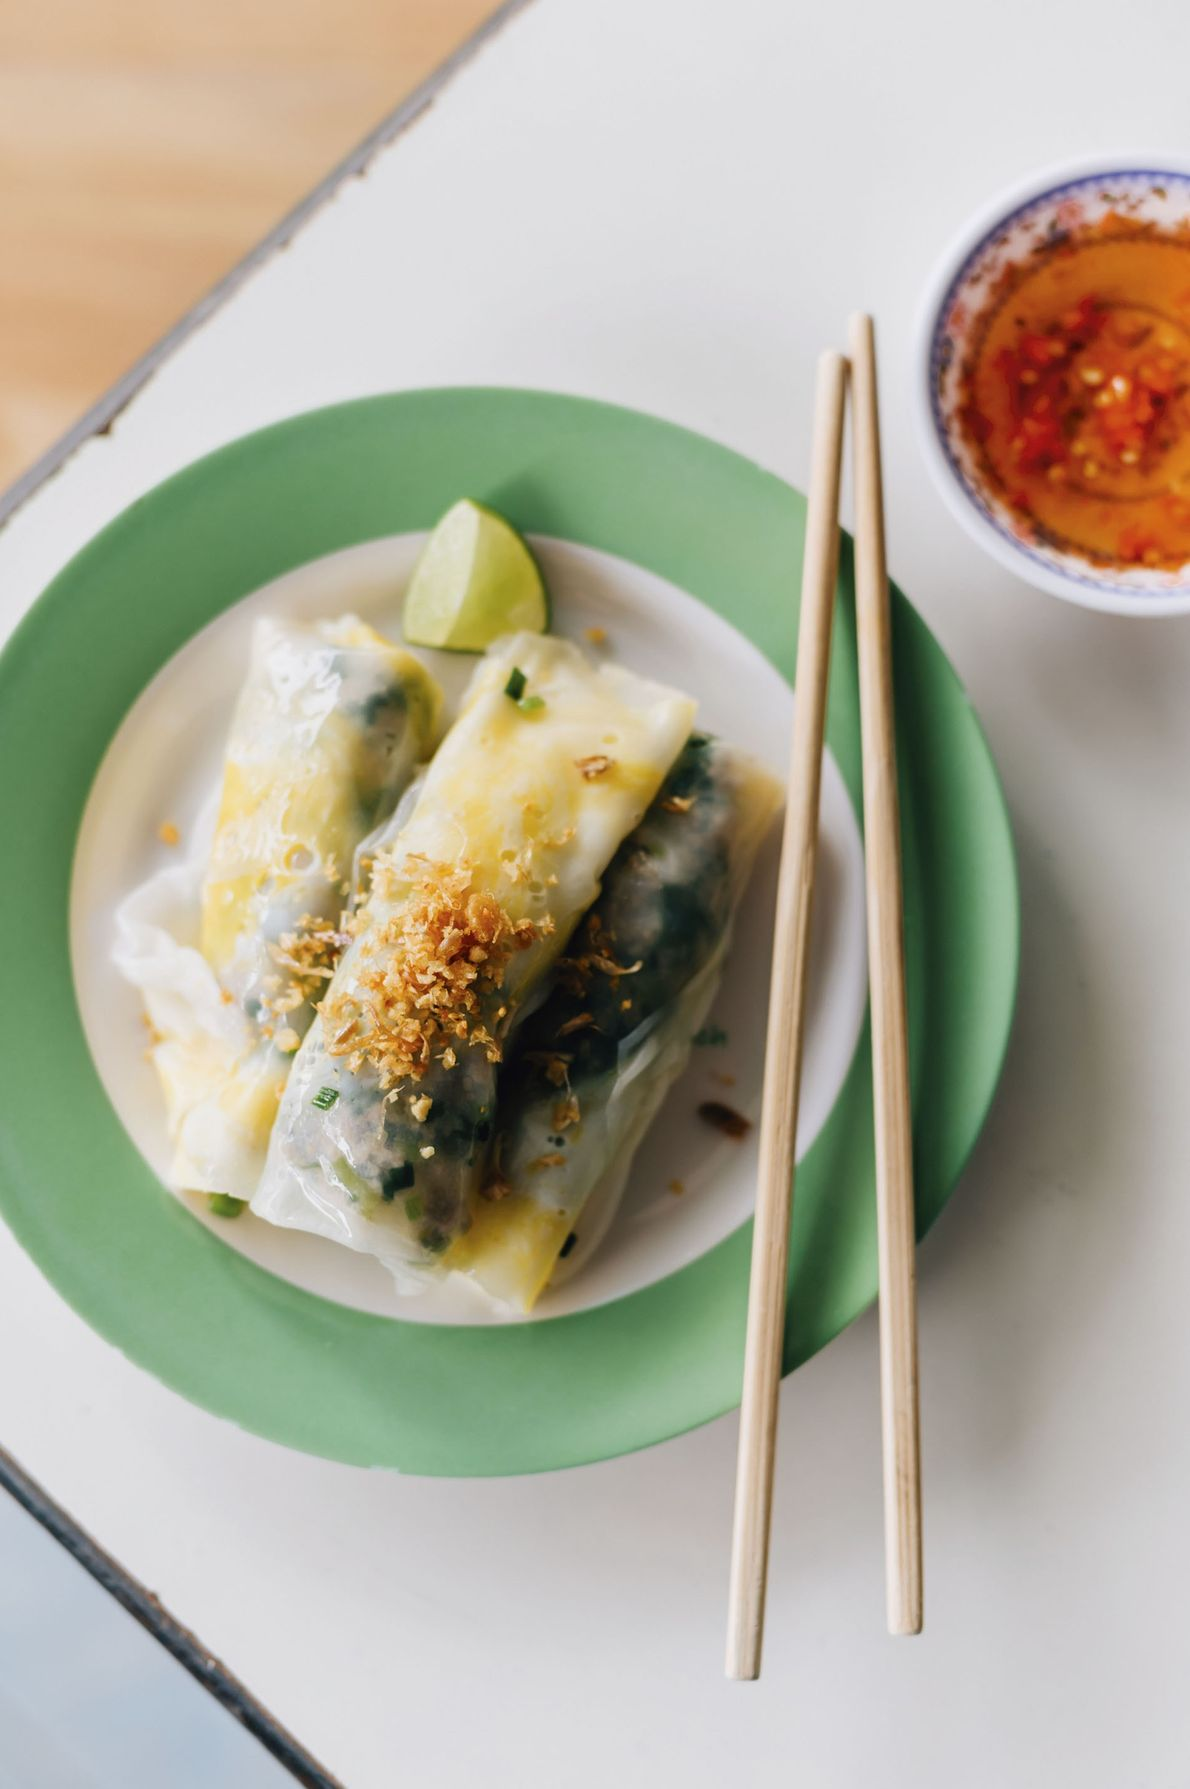 Banh cuon (steamed rice rolls)